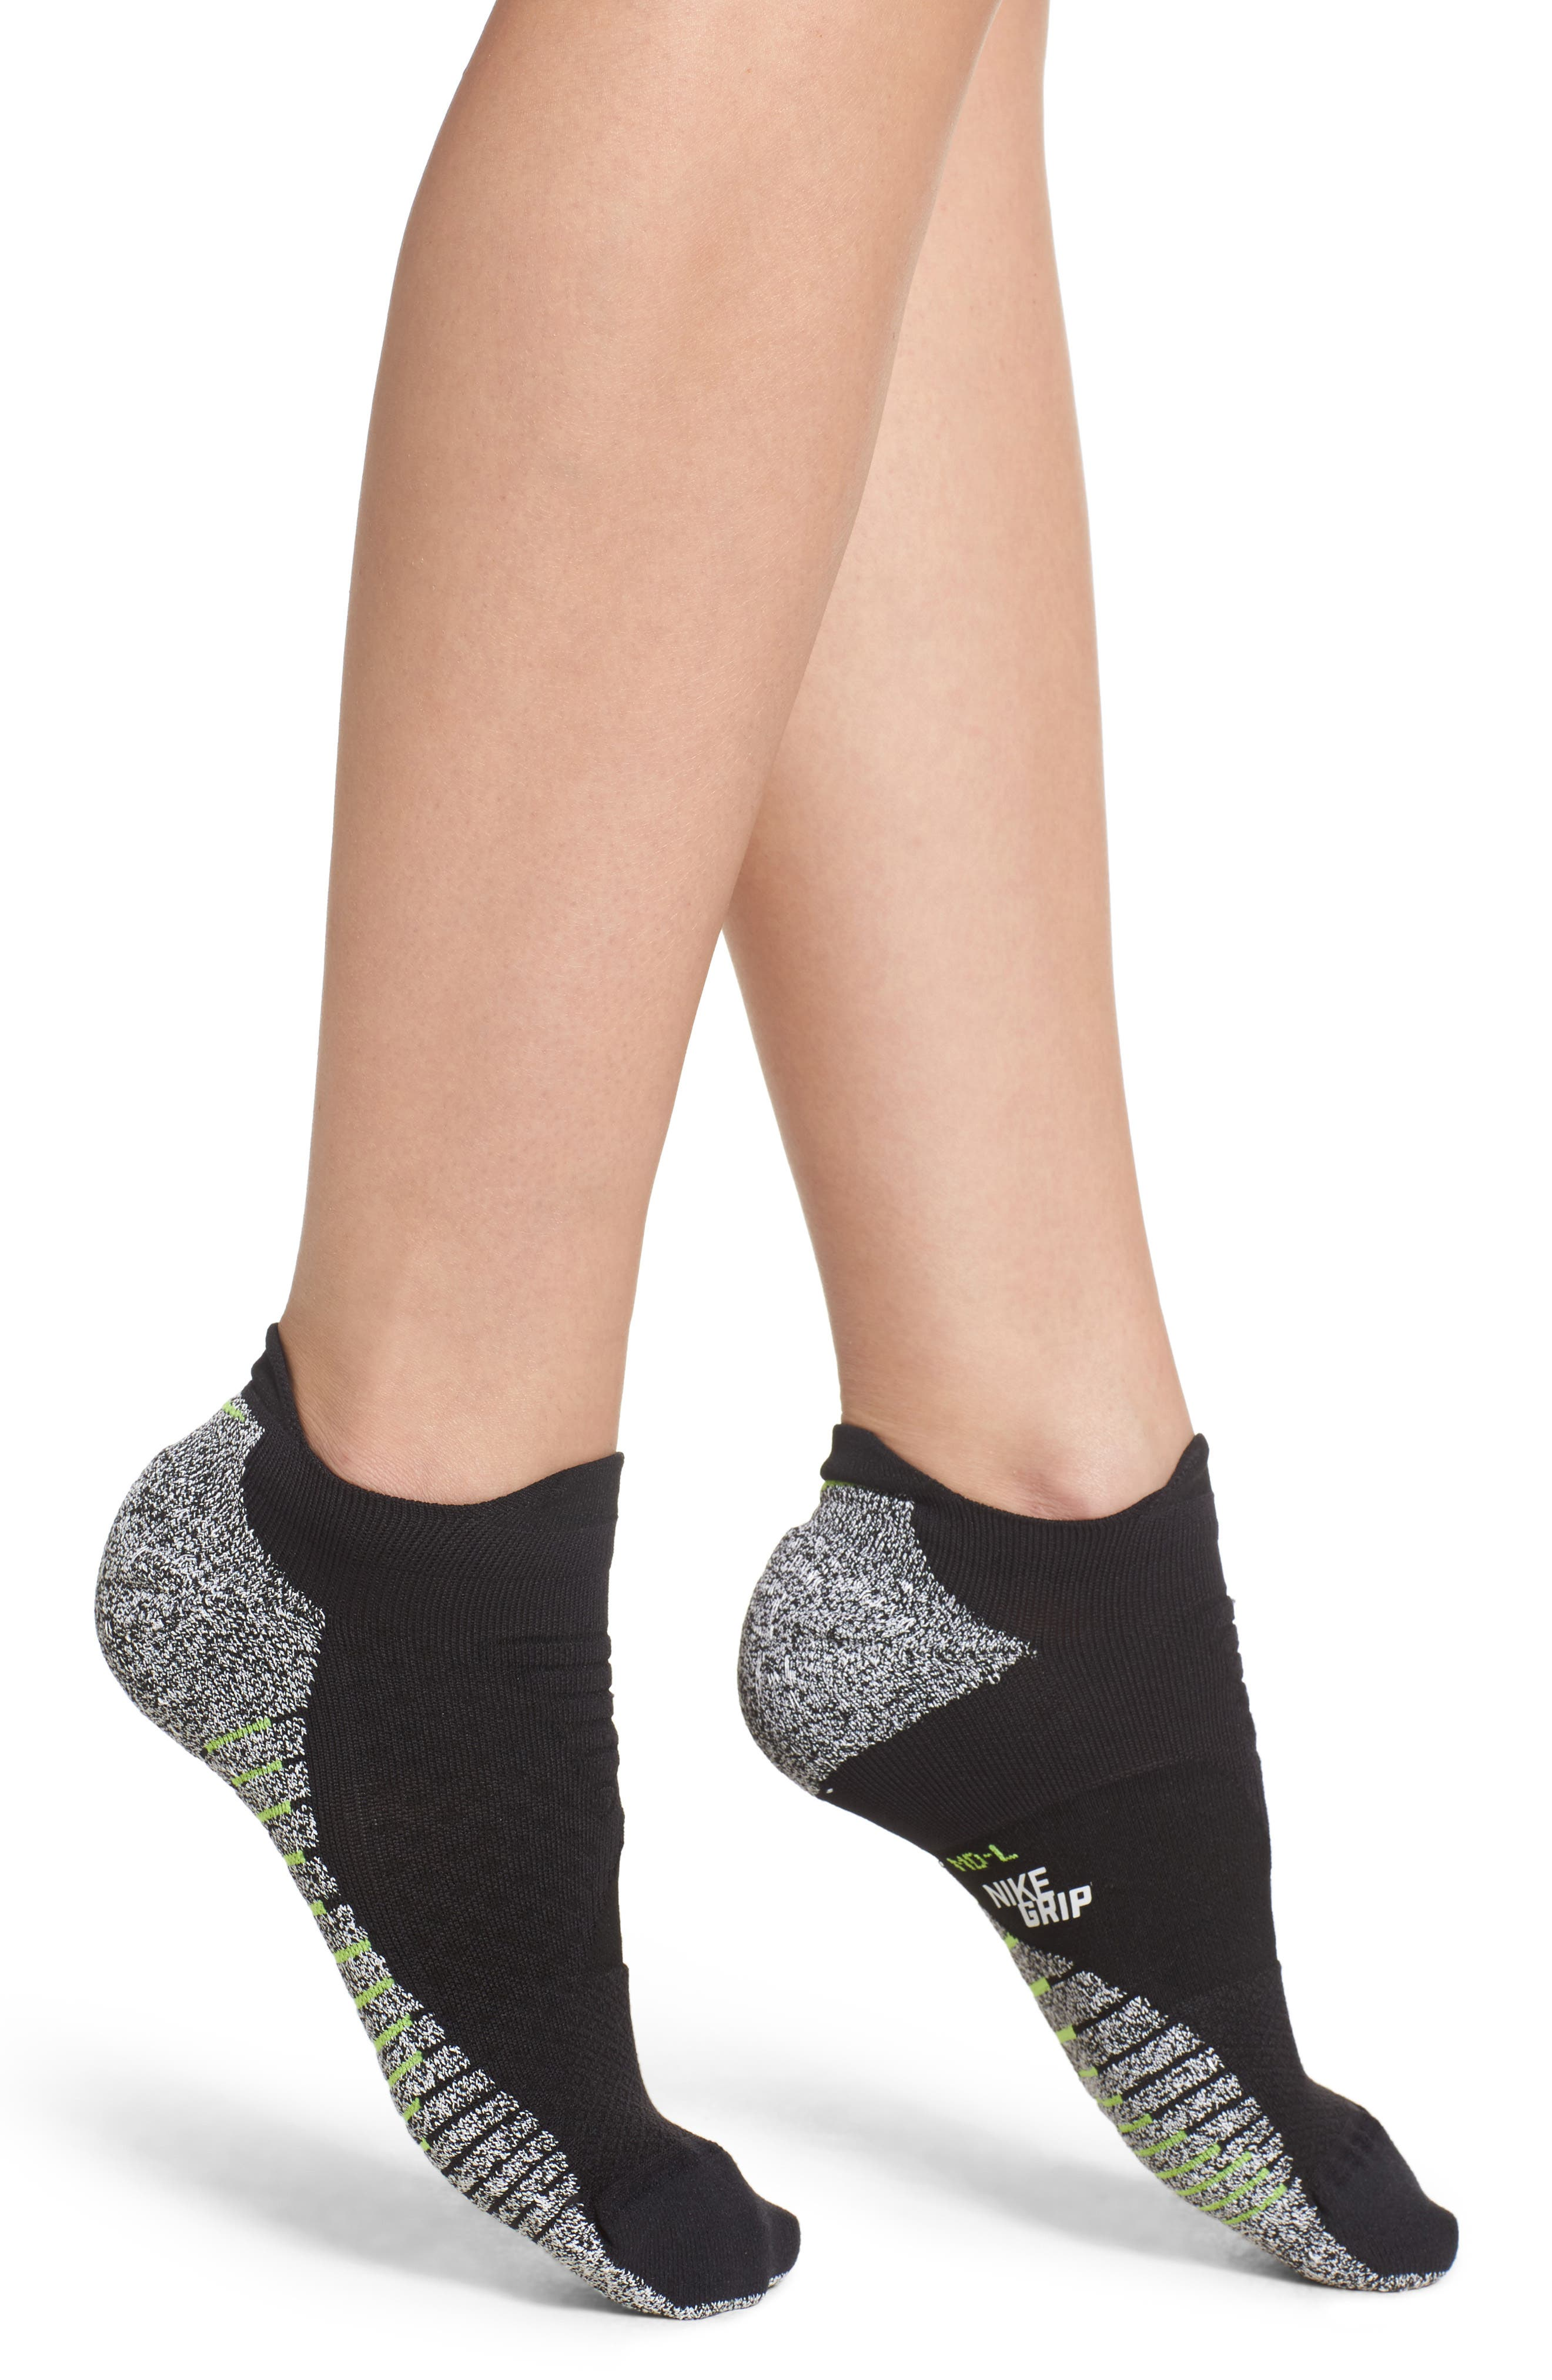 Nike NikeGrip Low Cut Socks